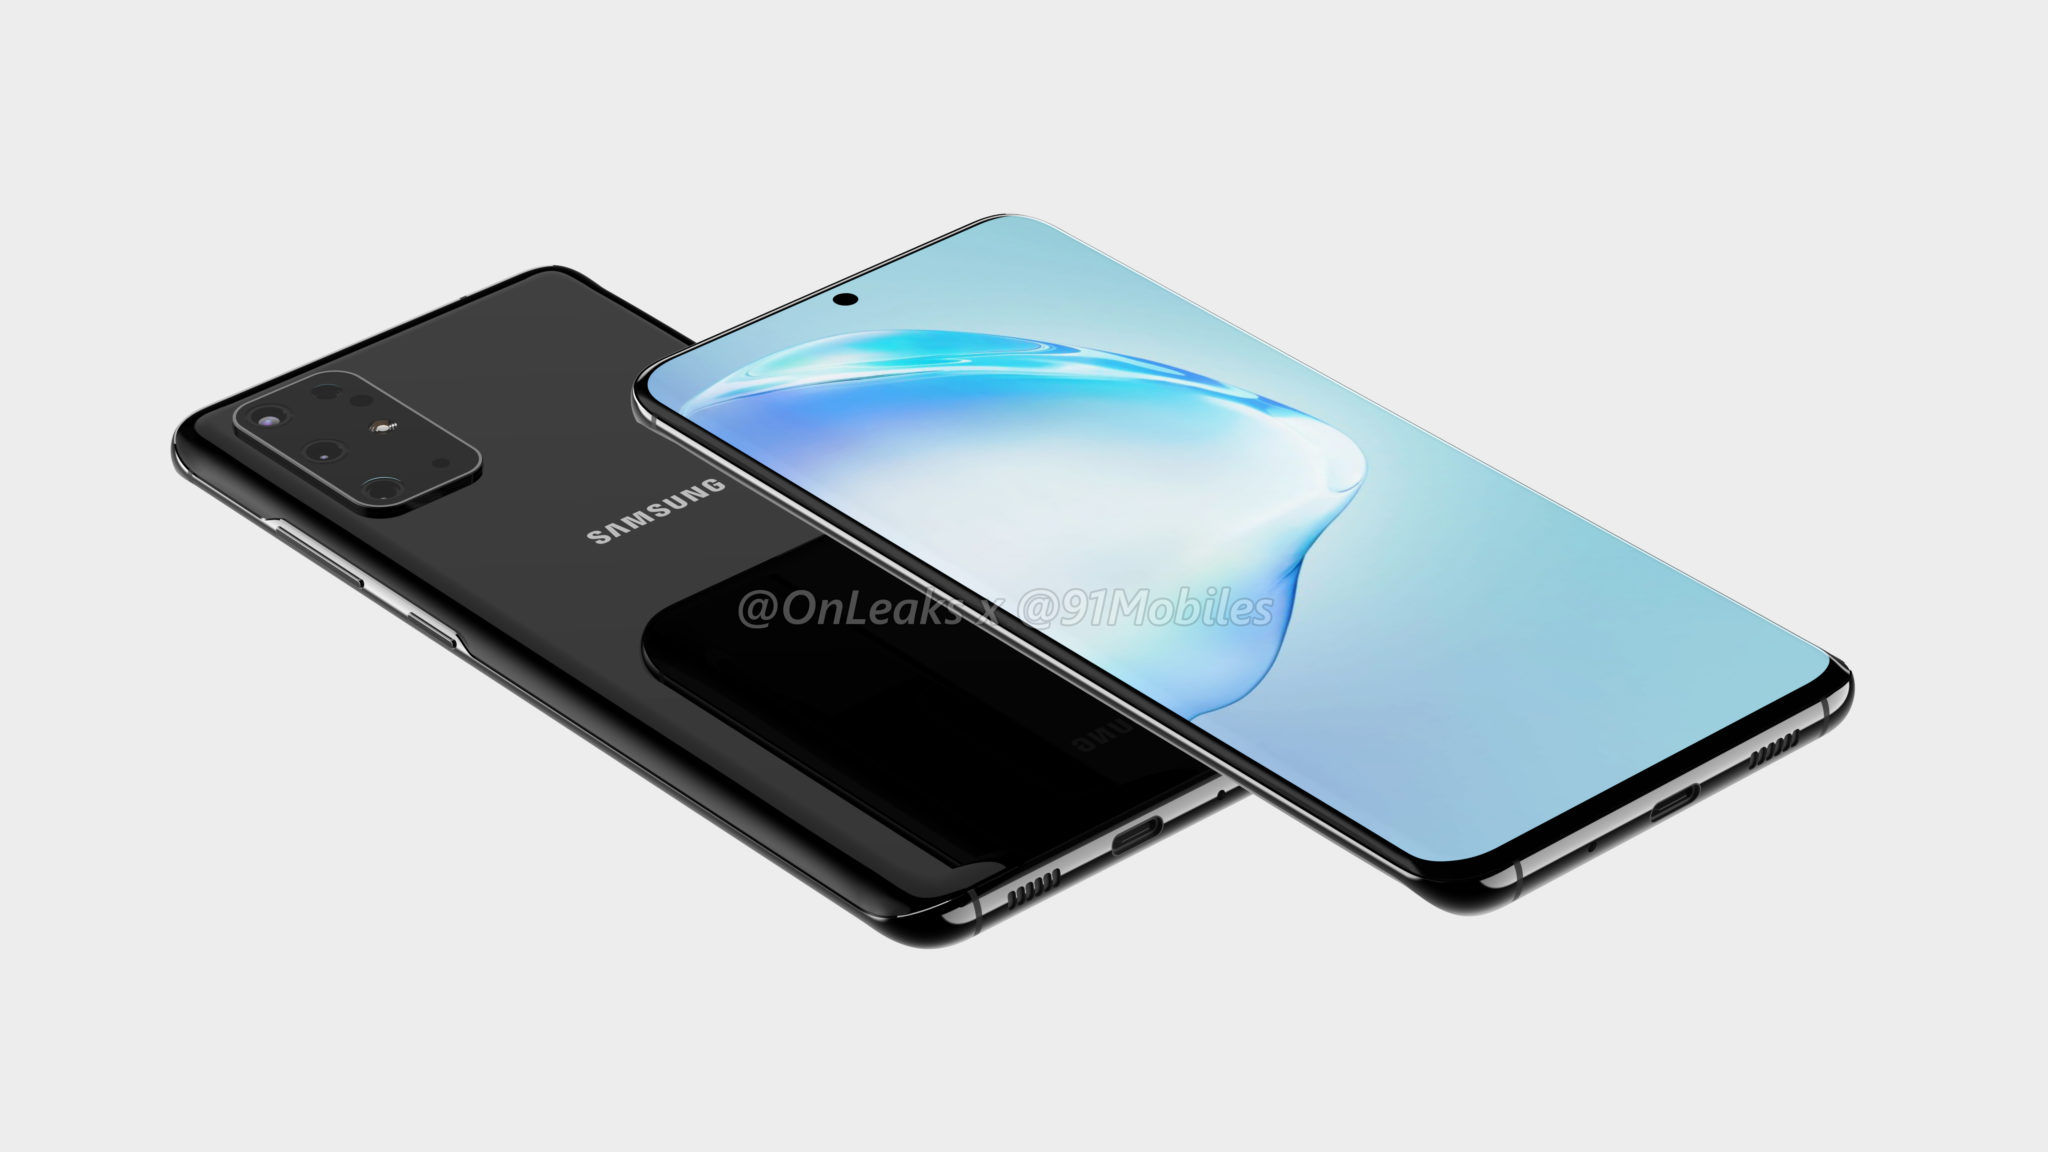 Galaxy S11 renders show a quintet of cameras, centered punch-hole display, and no headphone jack